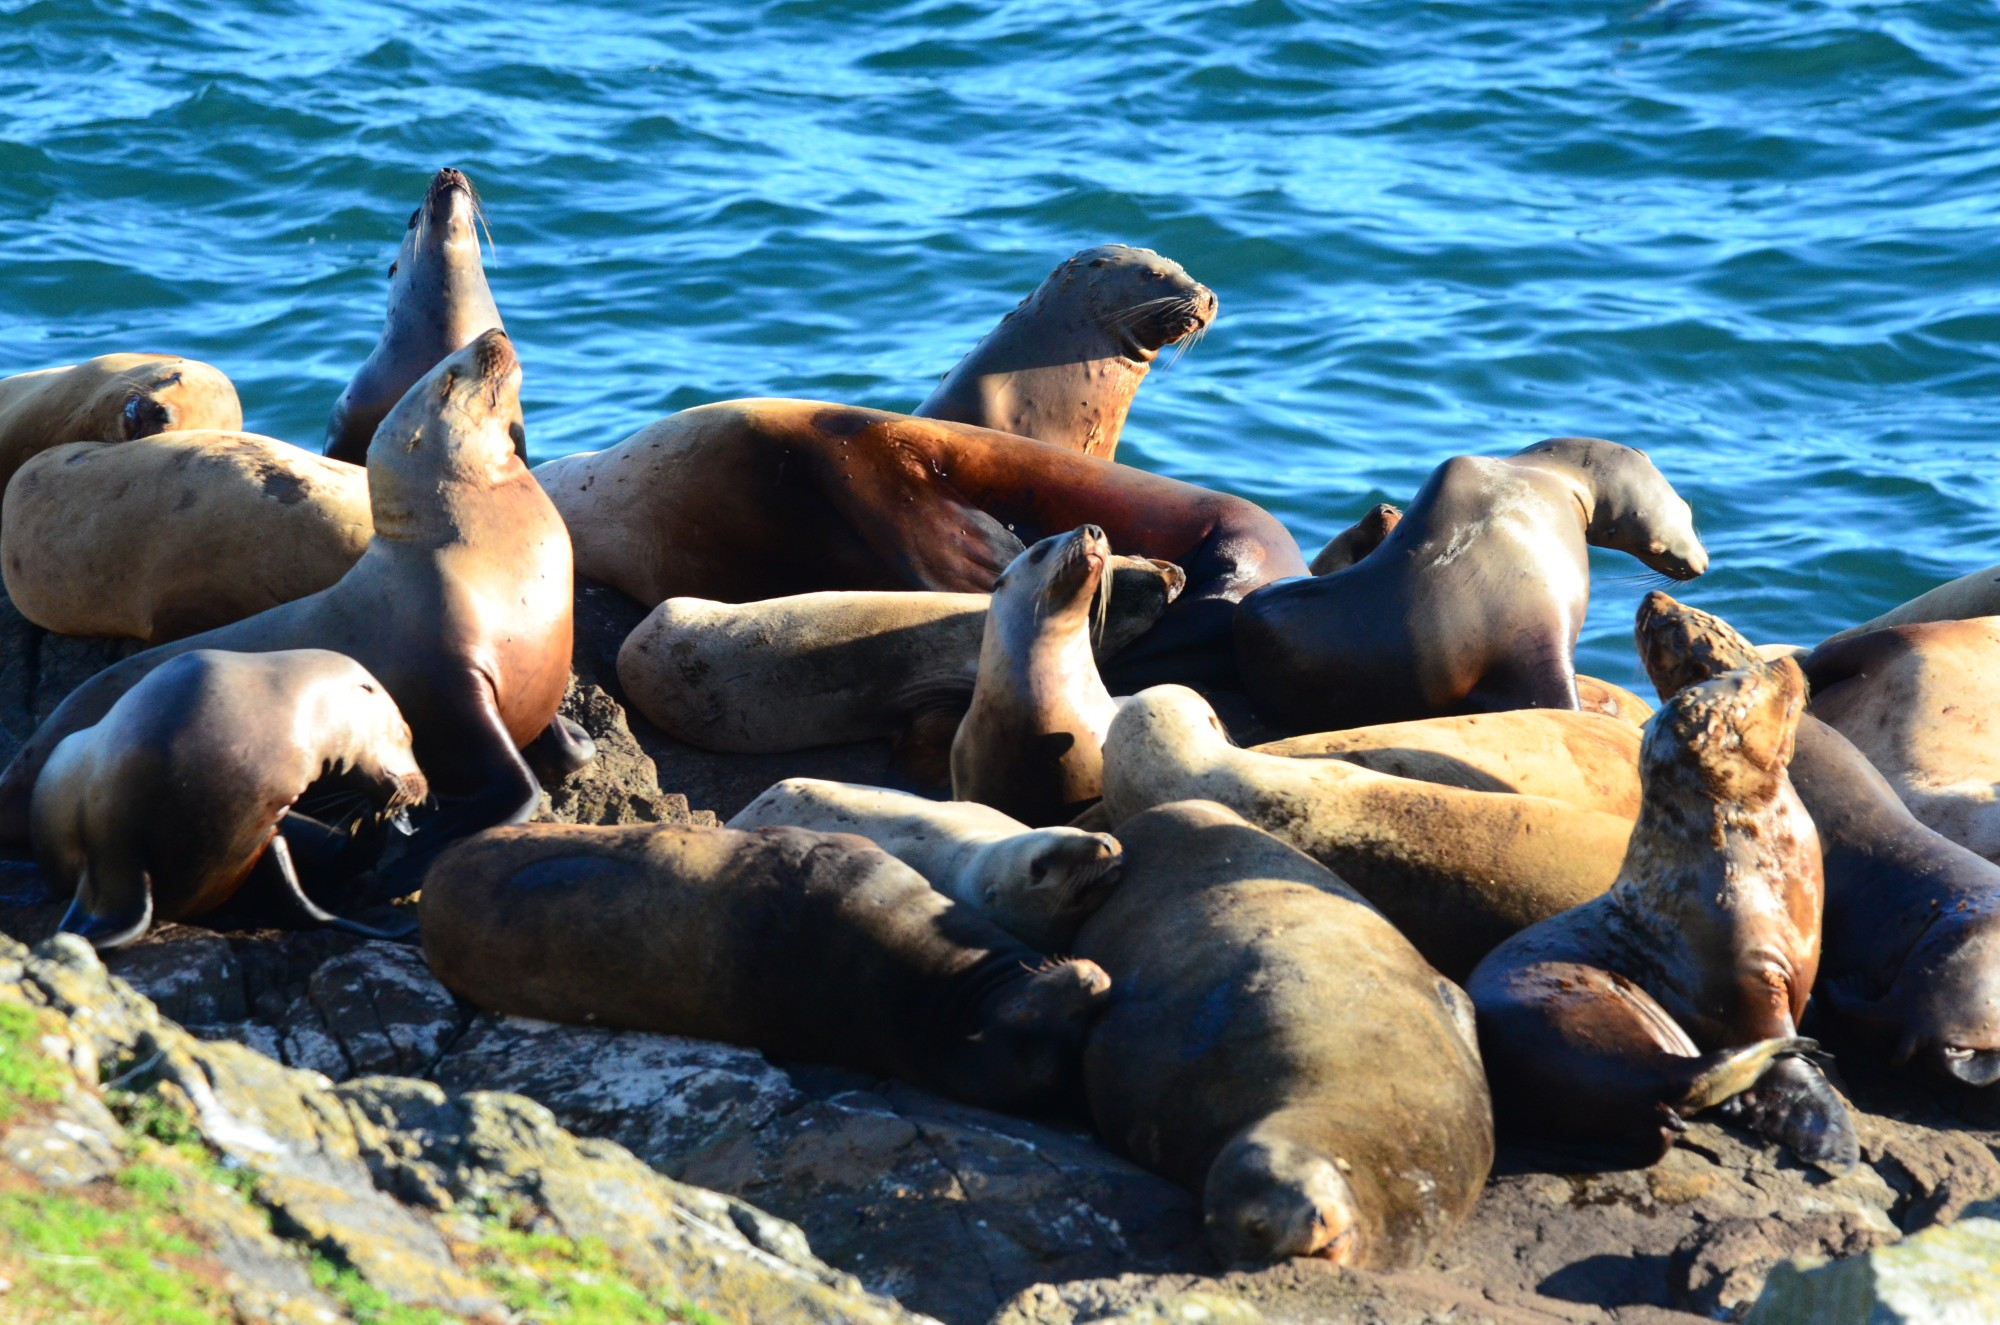 Sea lions looking shabby, but just molting